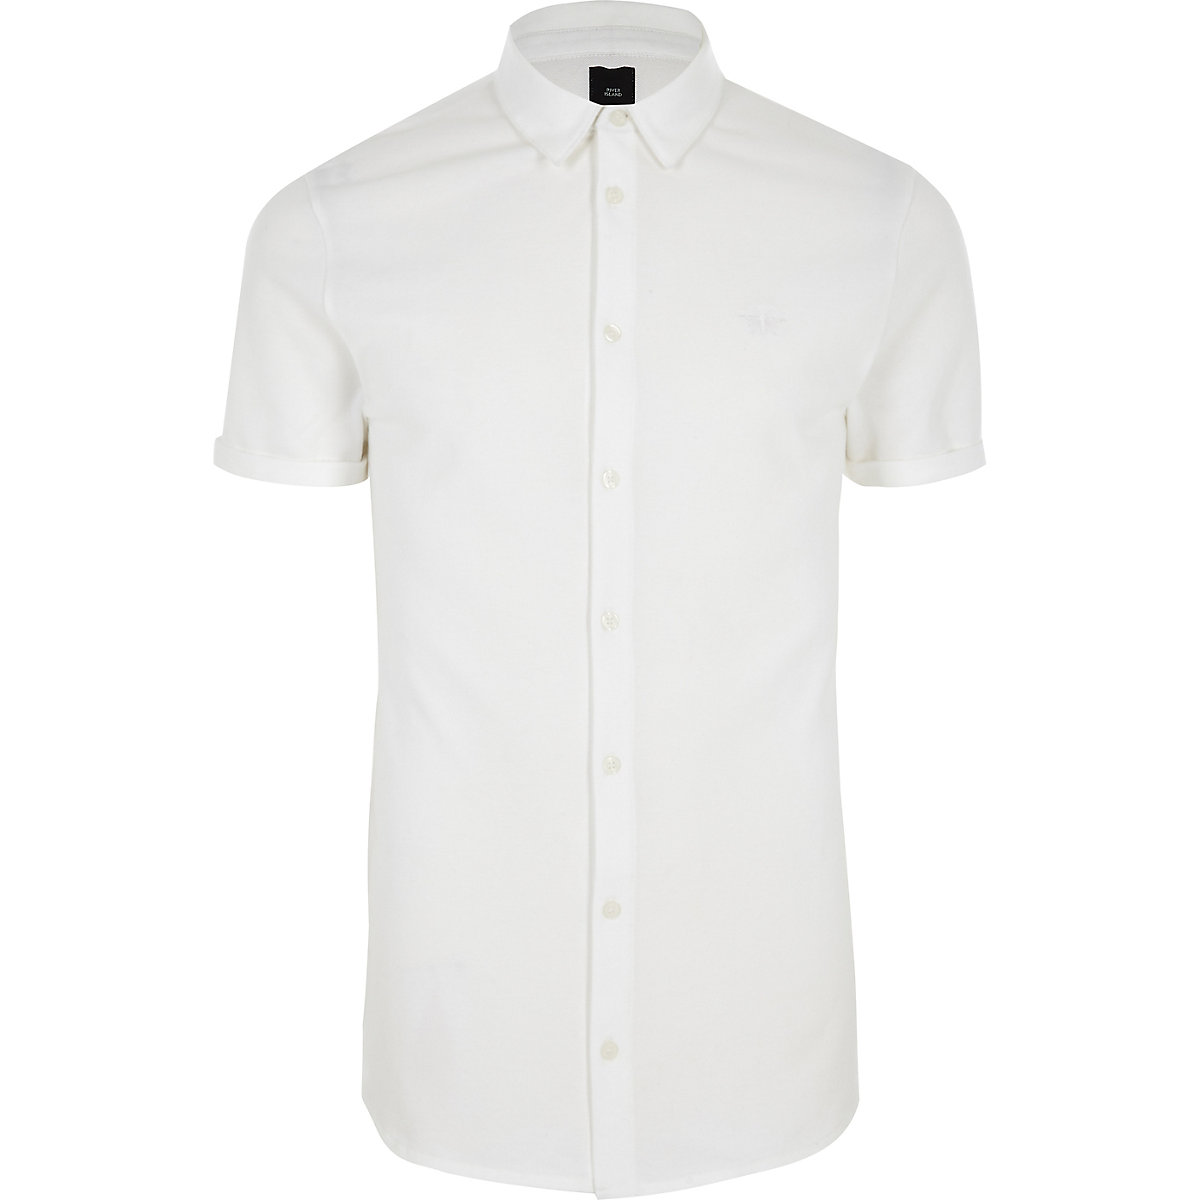 White muscle fit button-down shirt